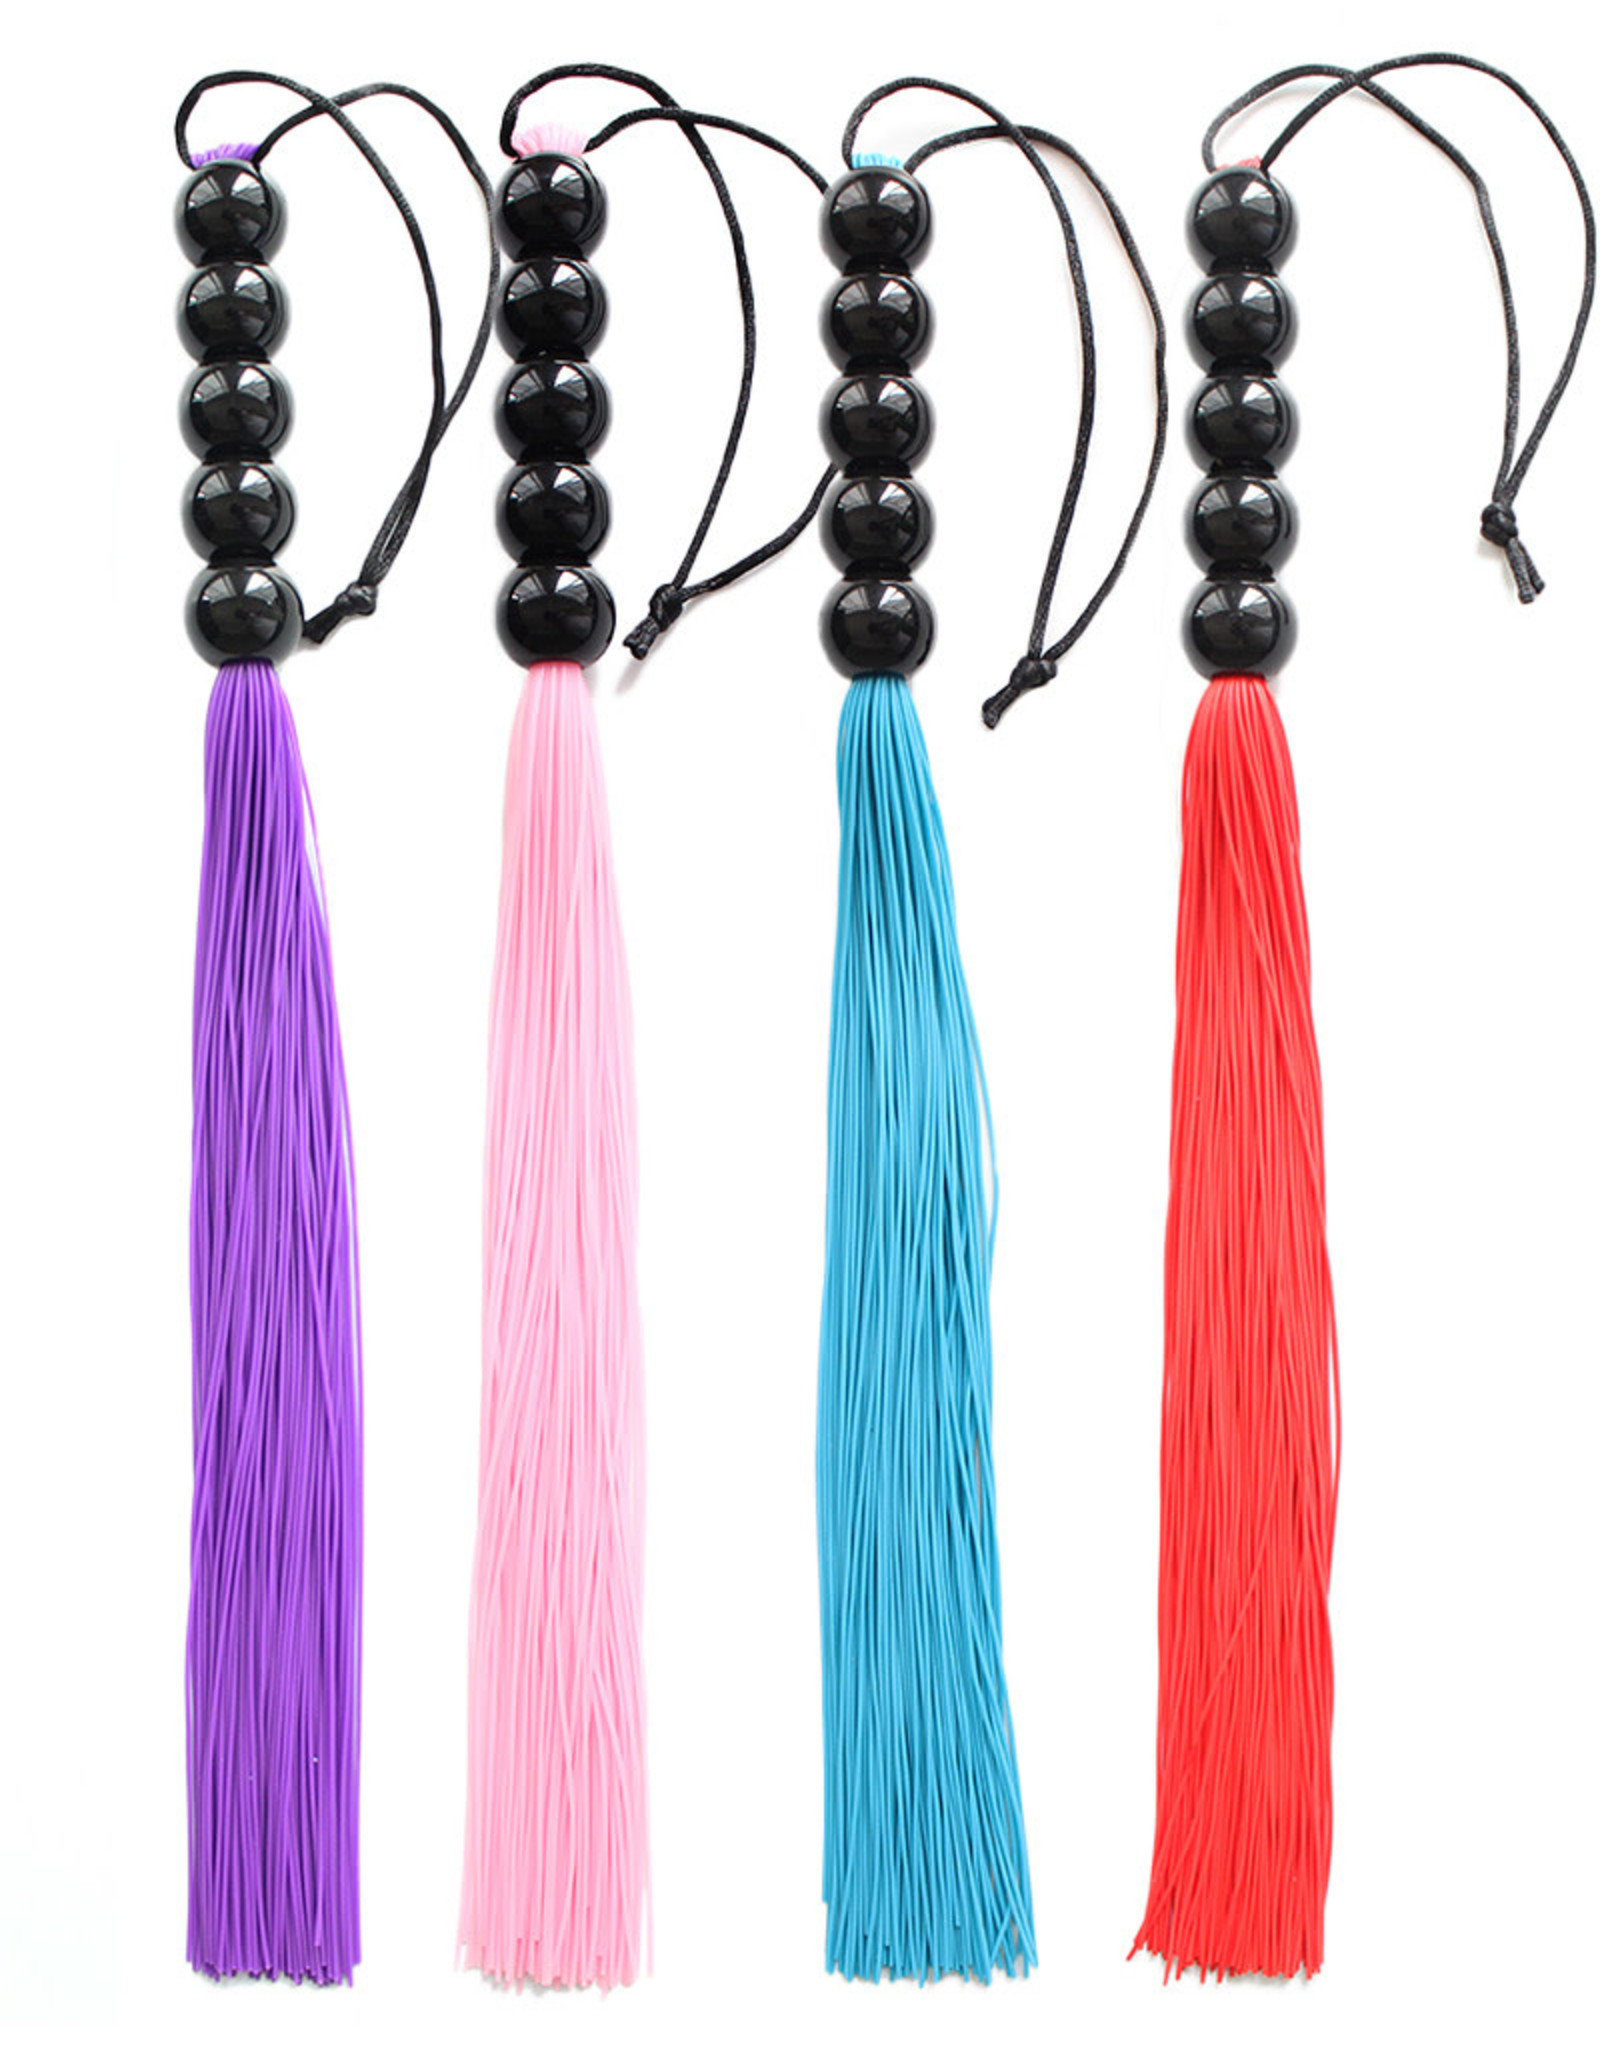 SILICONE WHIP WITH BEAD HANDLE RED